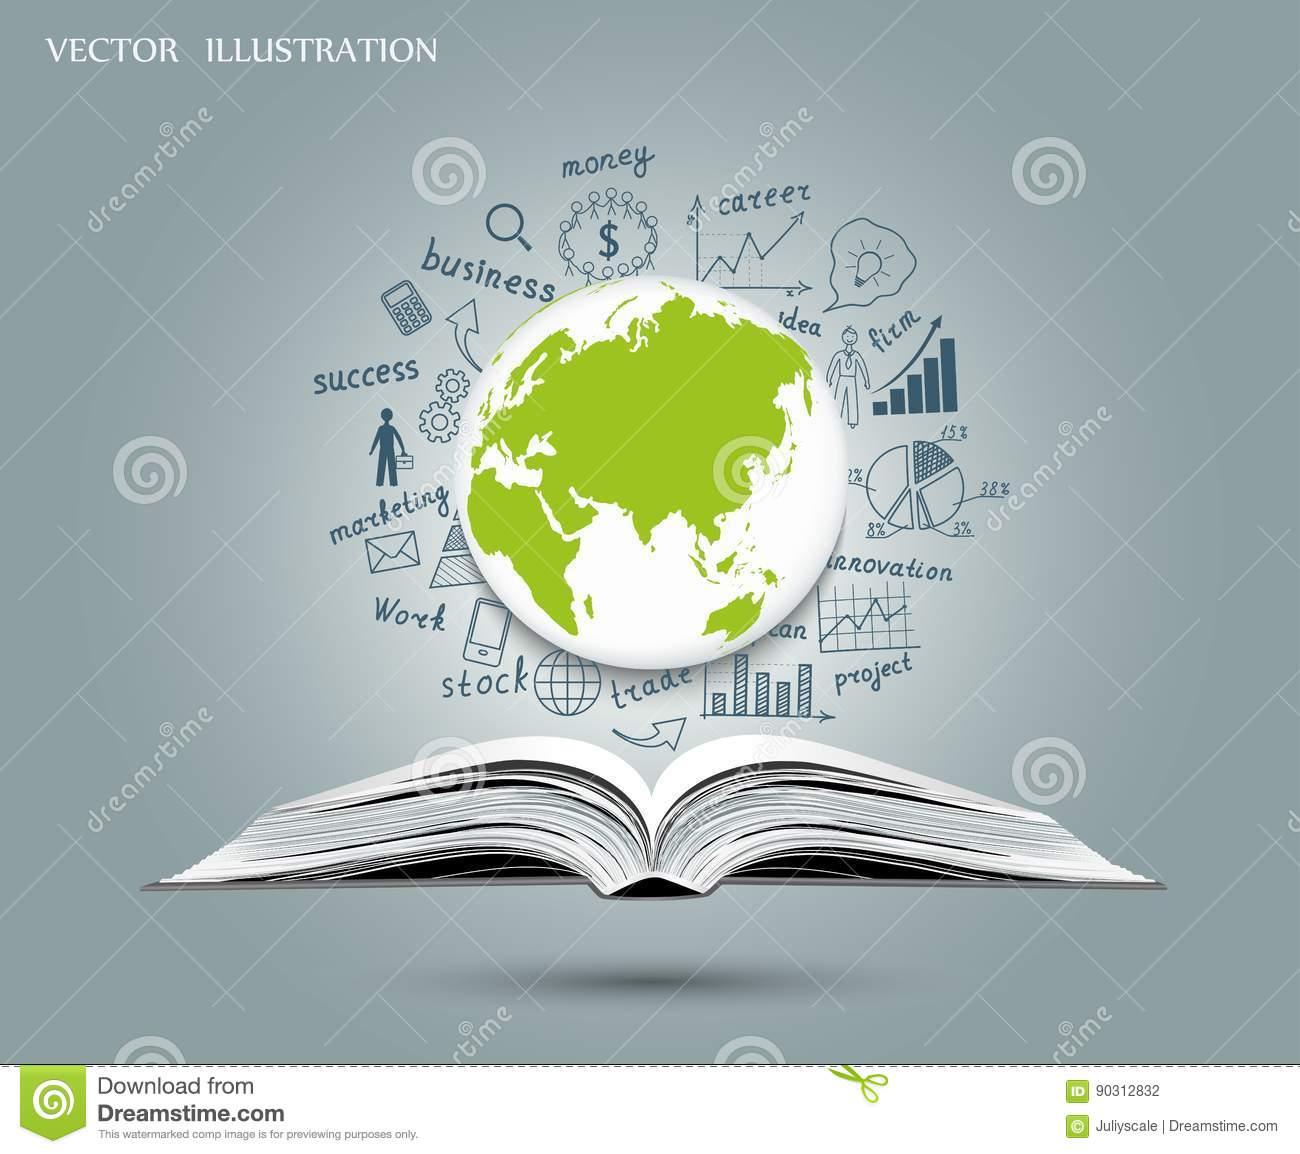 The Concept Of Business Ideas Stock Vector Illustration Of